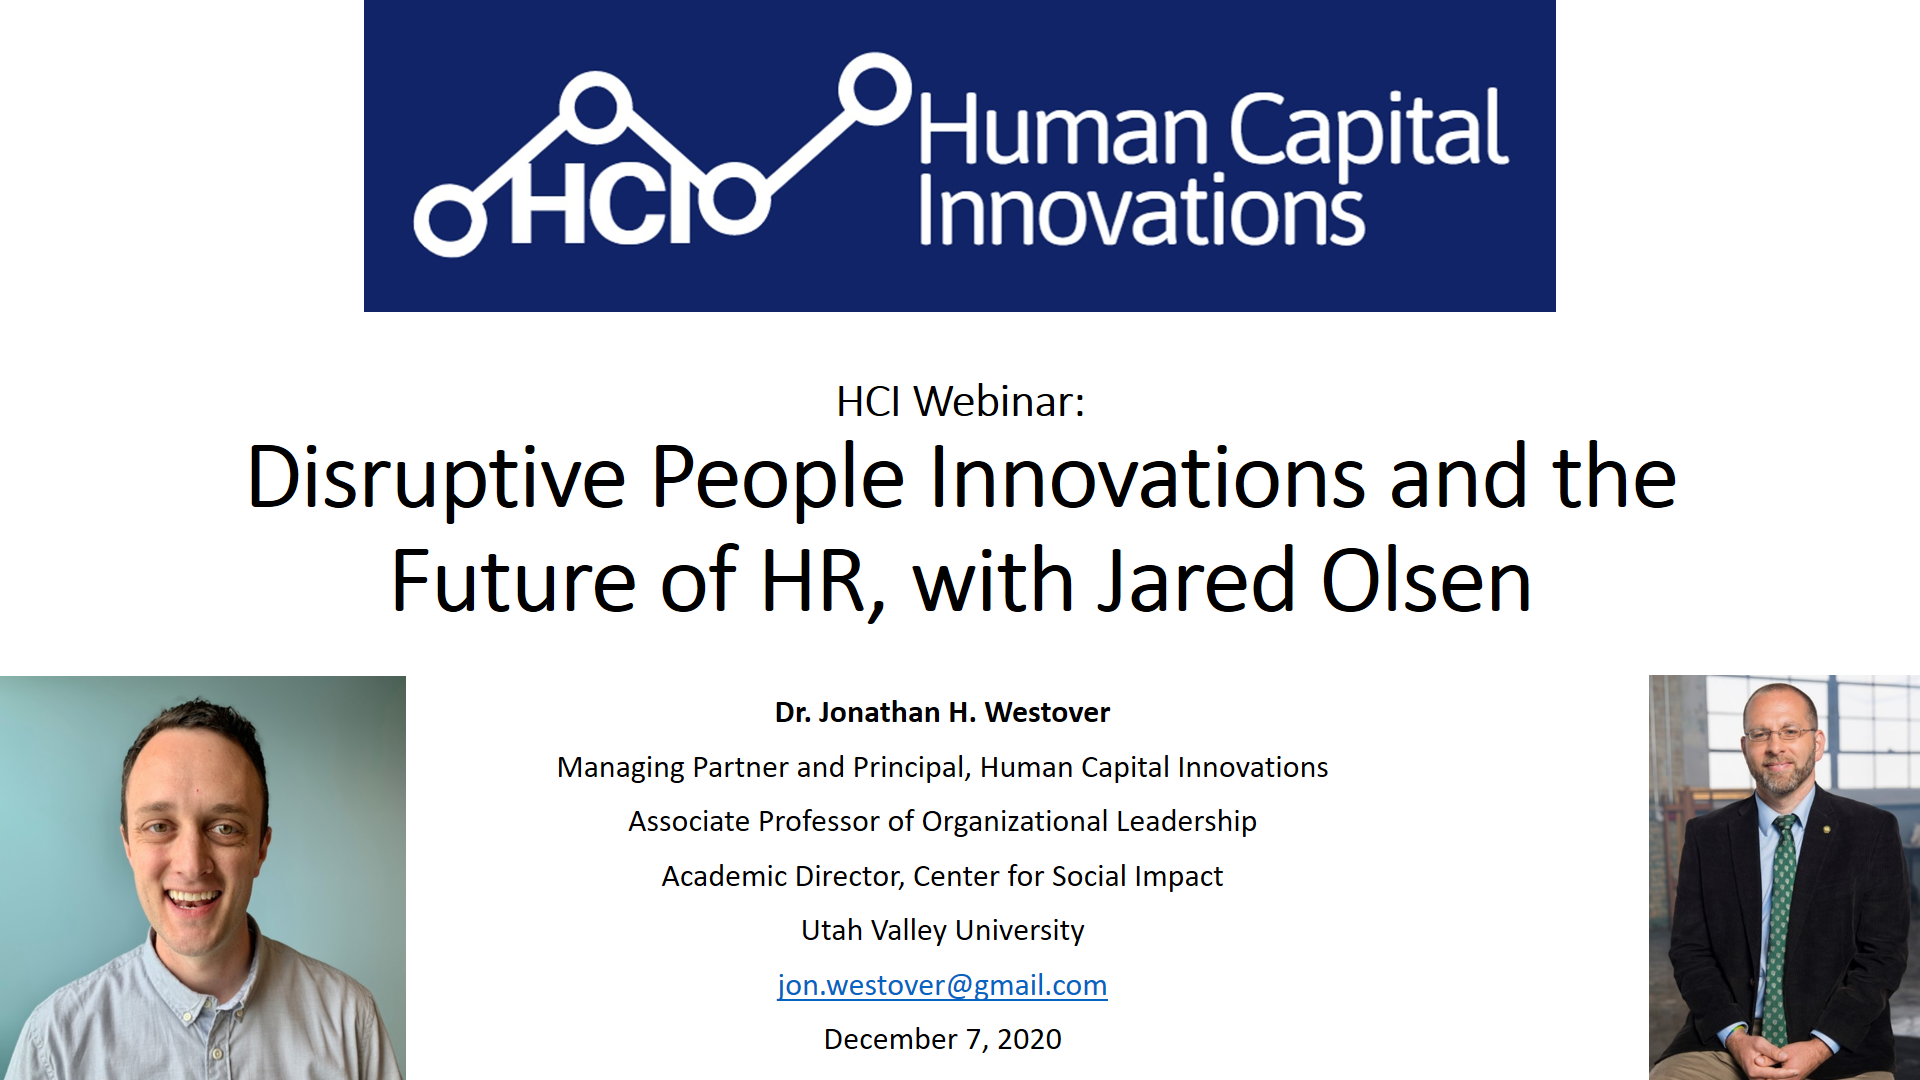 Disruptive People Innovations and the Future of HR